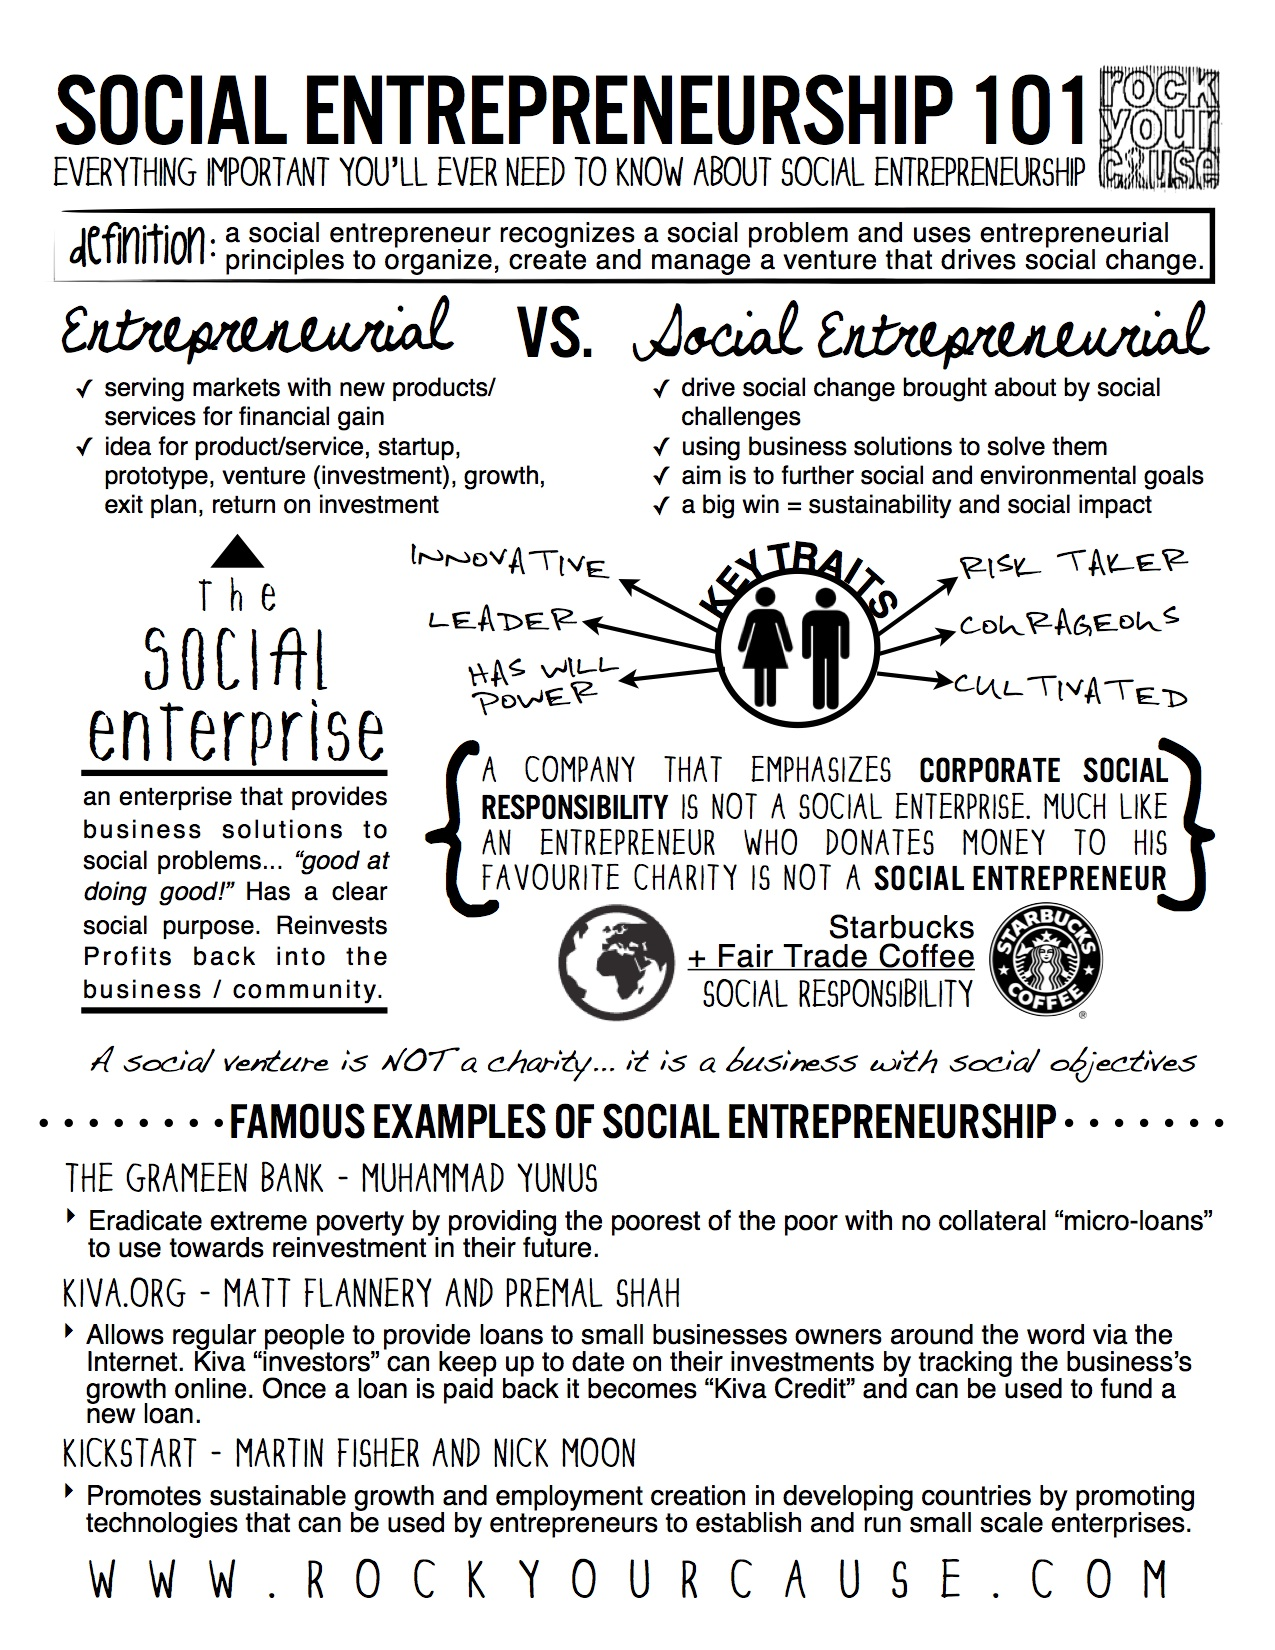 entrepreneurship exam Entrepreneurship exam study notes venture plan: a written summary of what a business of product will accomplish and how they will accomplish it entrepreneur: a person who takes risks and organizes their resources in order to satisfy needs.